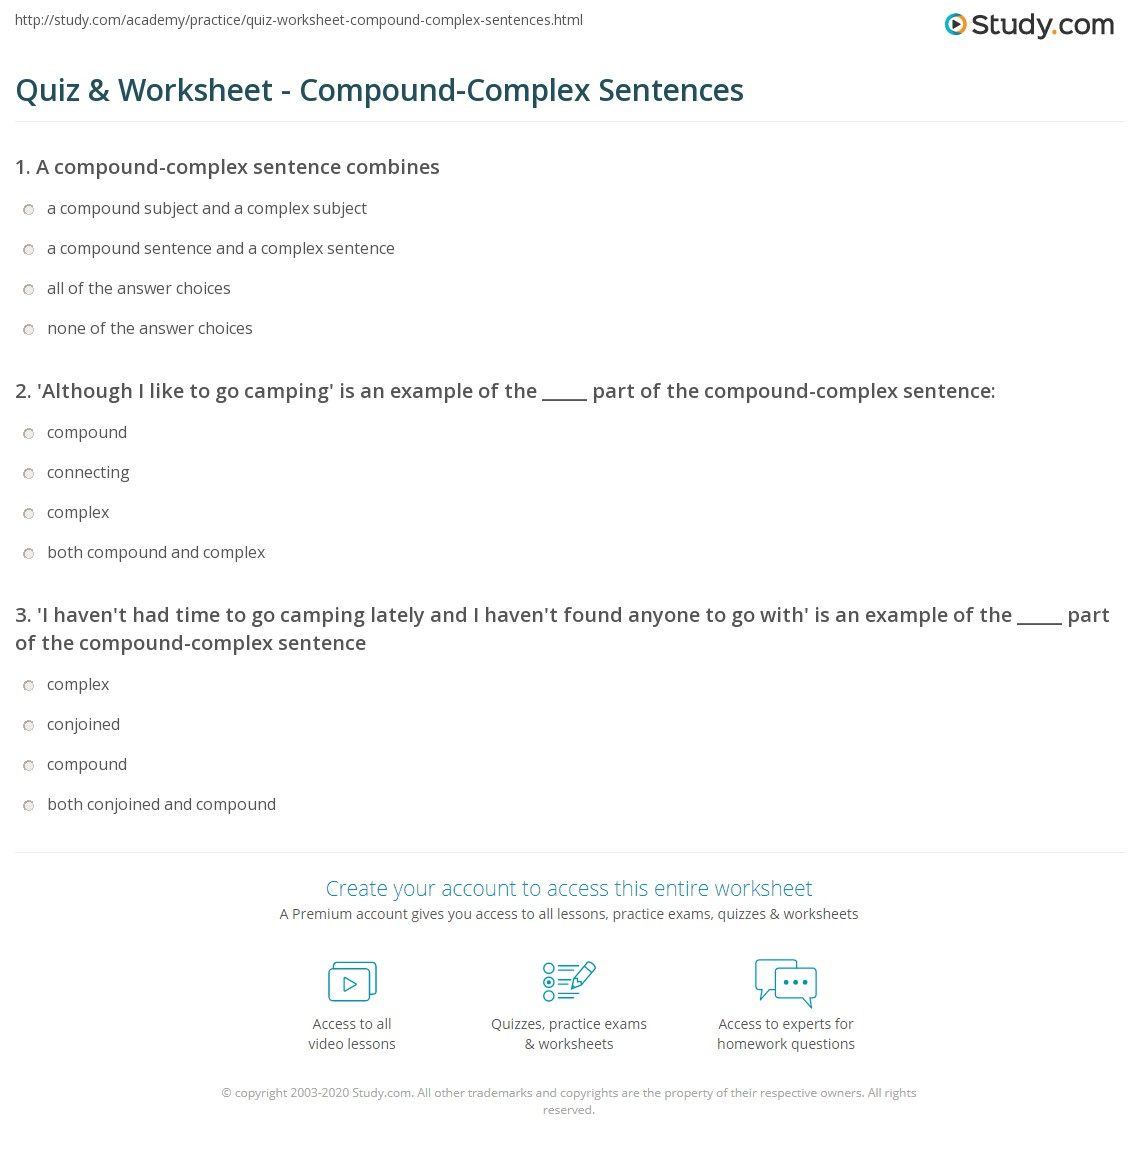 Worksheets Quiz On Types Of Sentences Simple Compound Complex Compound-complex quiz worksheet compound complex sentences study com print sentence definition examples worksheet